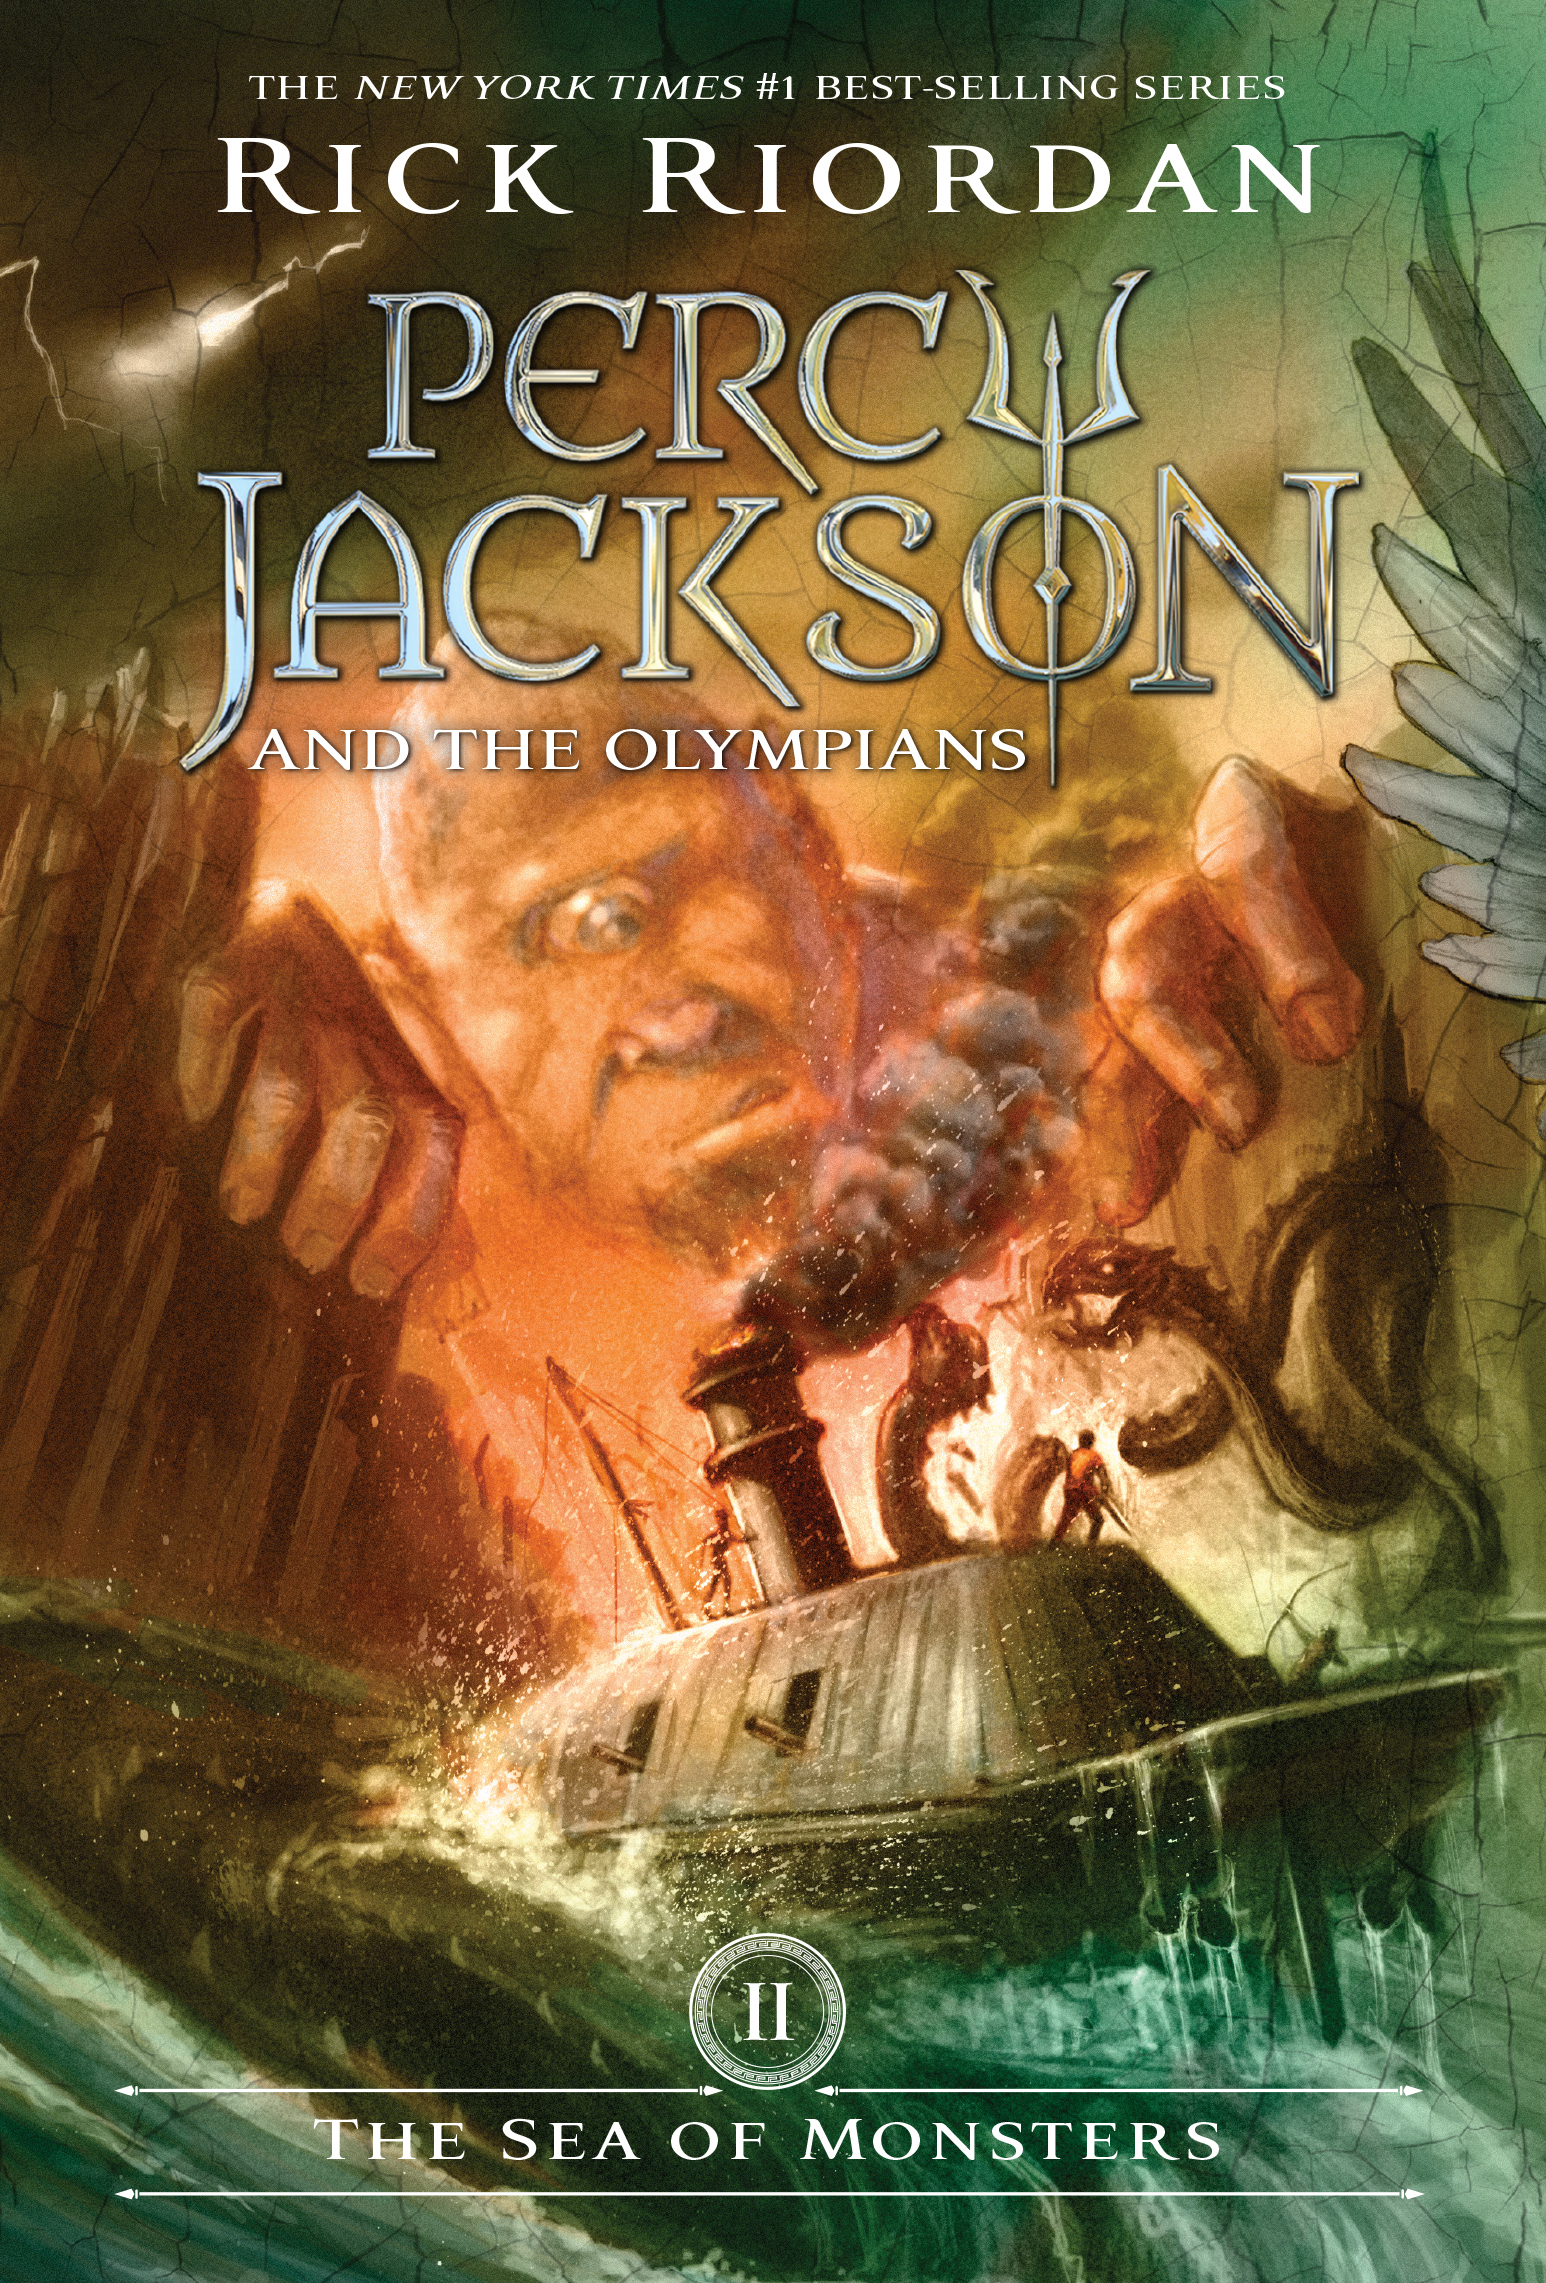 Cover Image of The Sea of Monsters (Percy Jackson and the Olympians, Book 2)